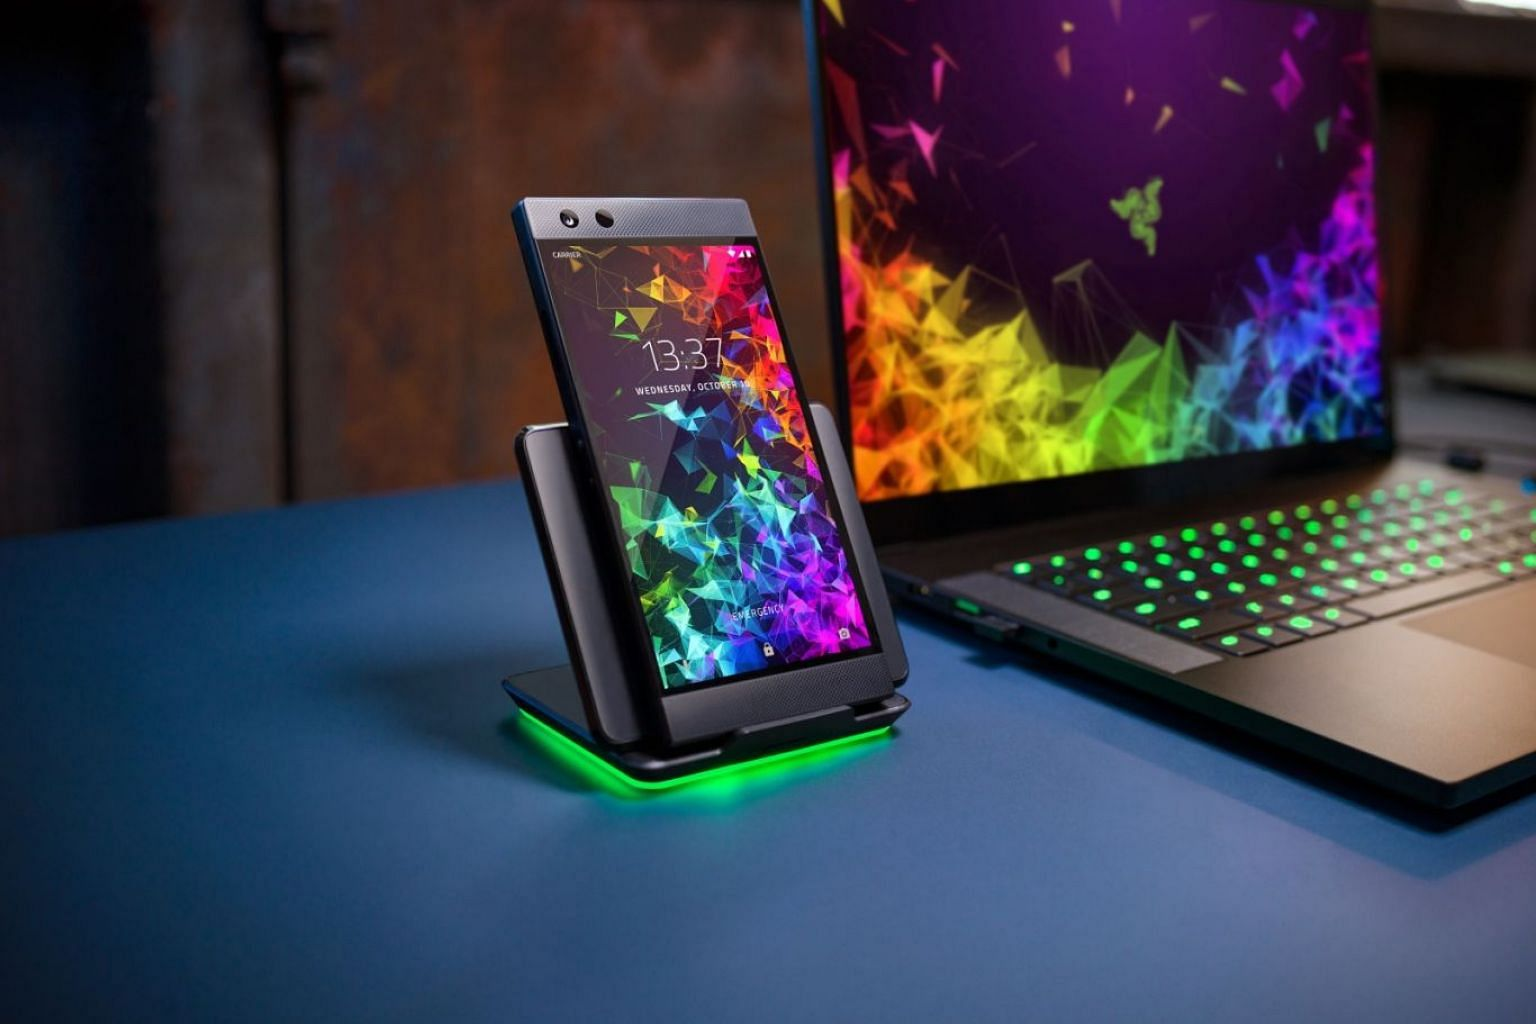 The new Razer Phone 2 adds flagship features such as wireless charging and waterproofing, while maintaining its gaming roots with a 120Hz display and dual front-facing speakers.